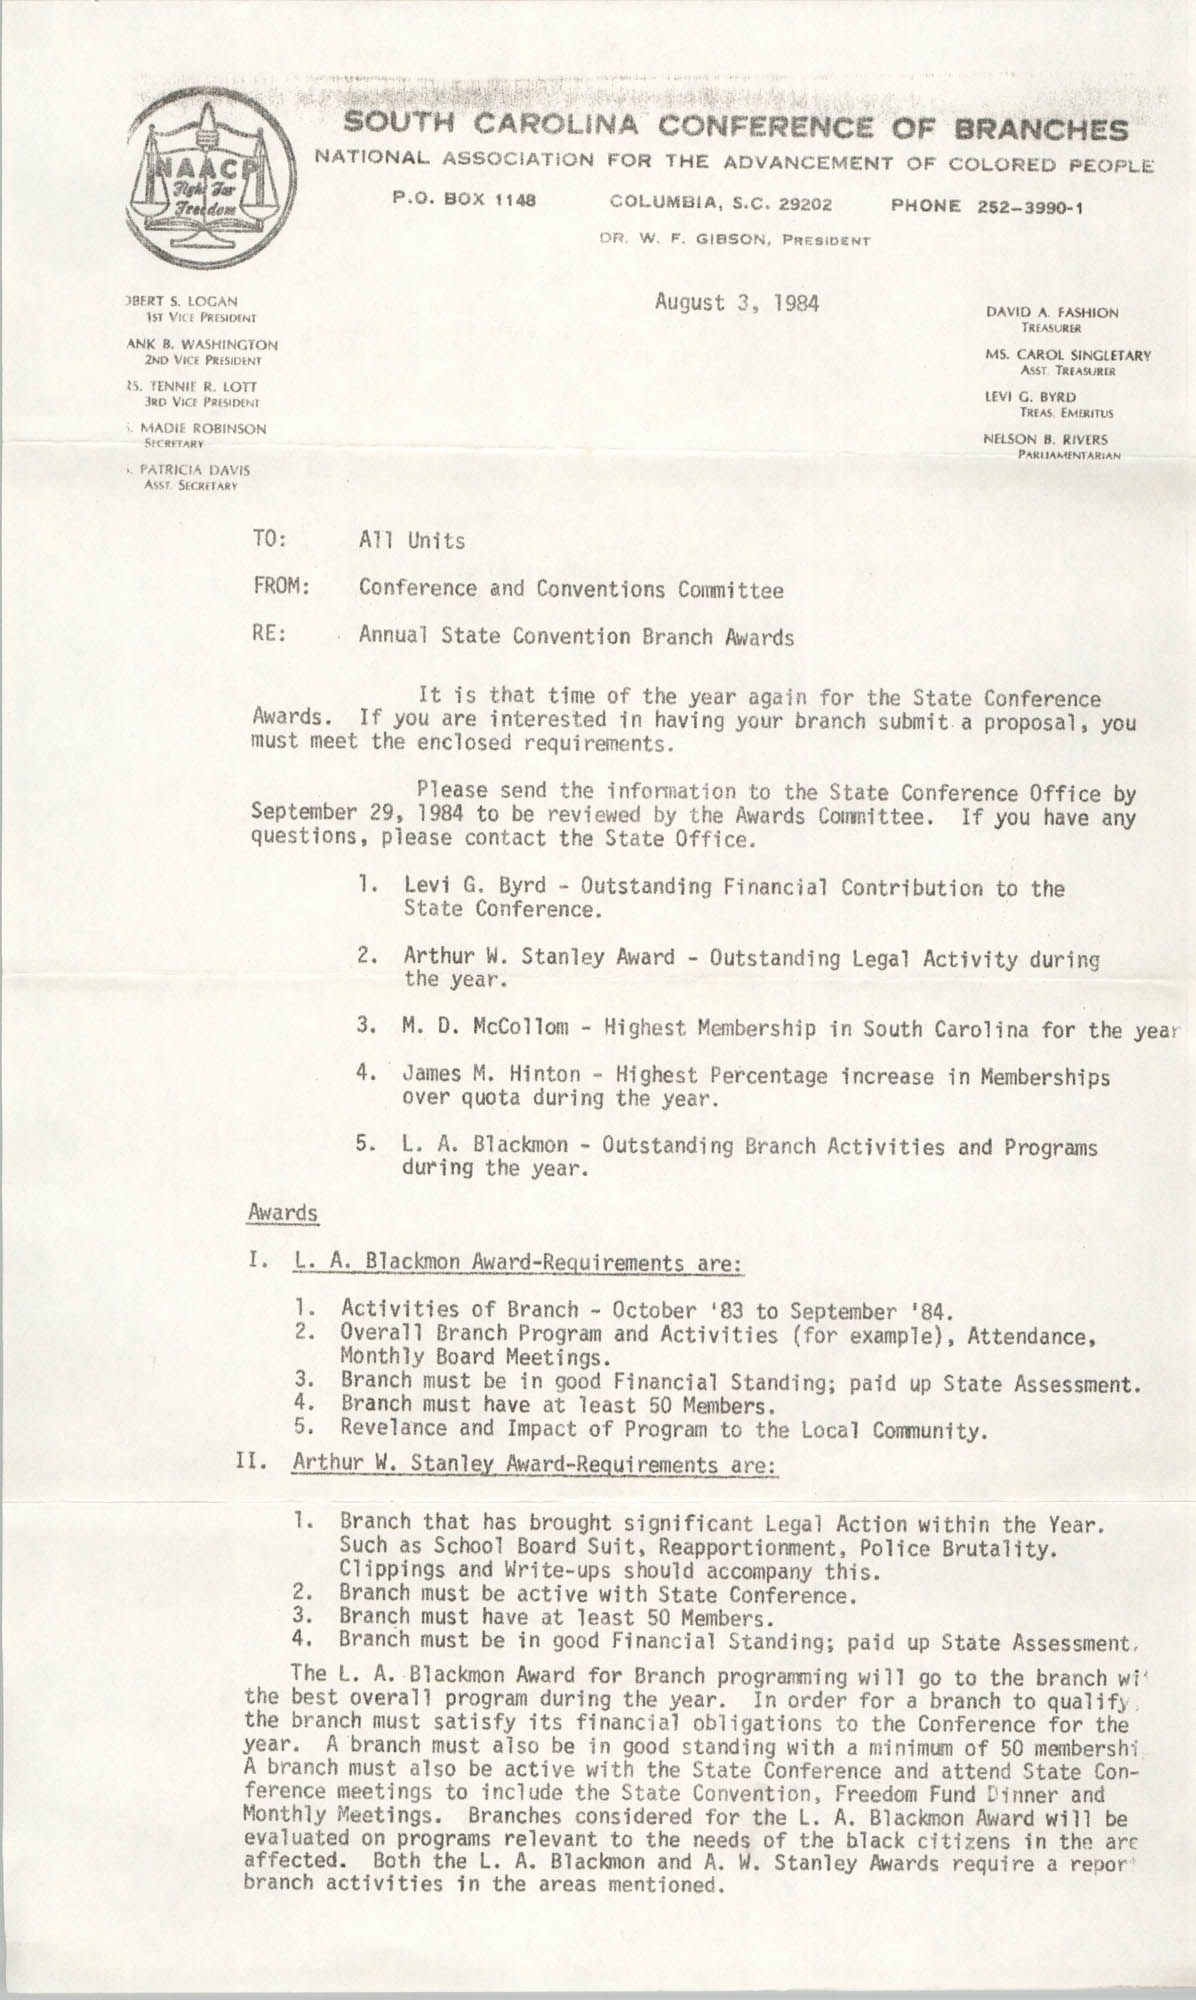 South Carolina Conference of Branches of the NAACP Memorandum, August 3, 1984